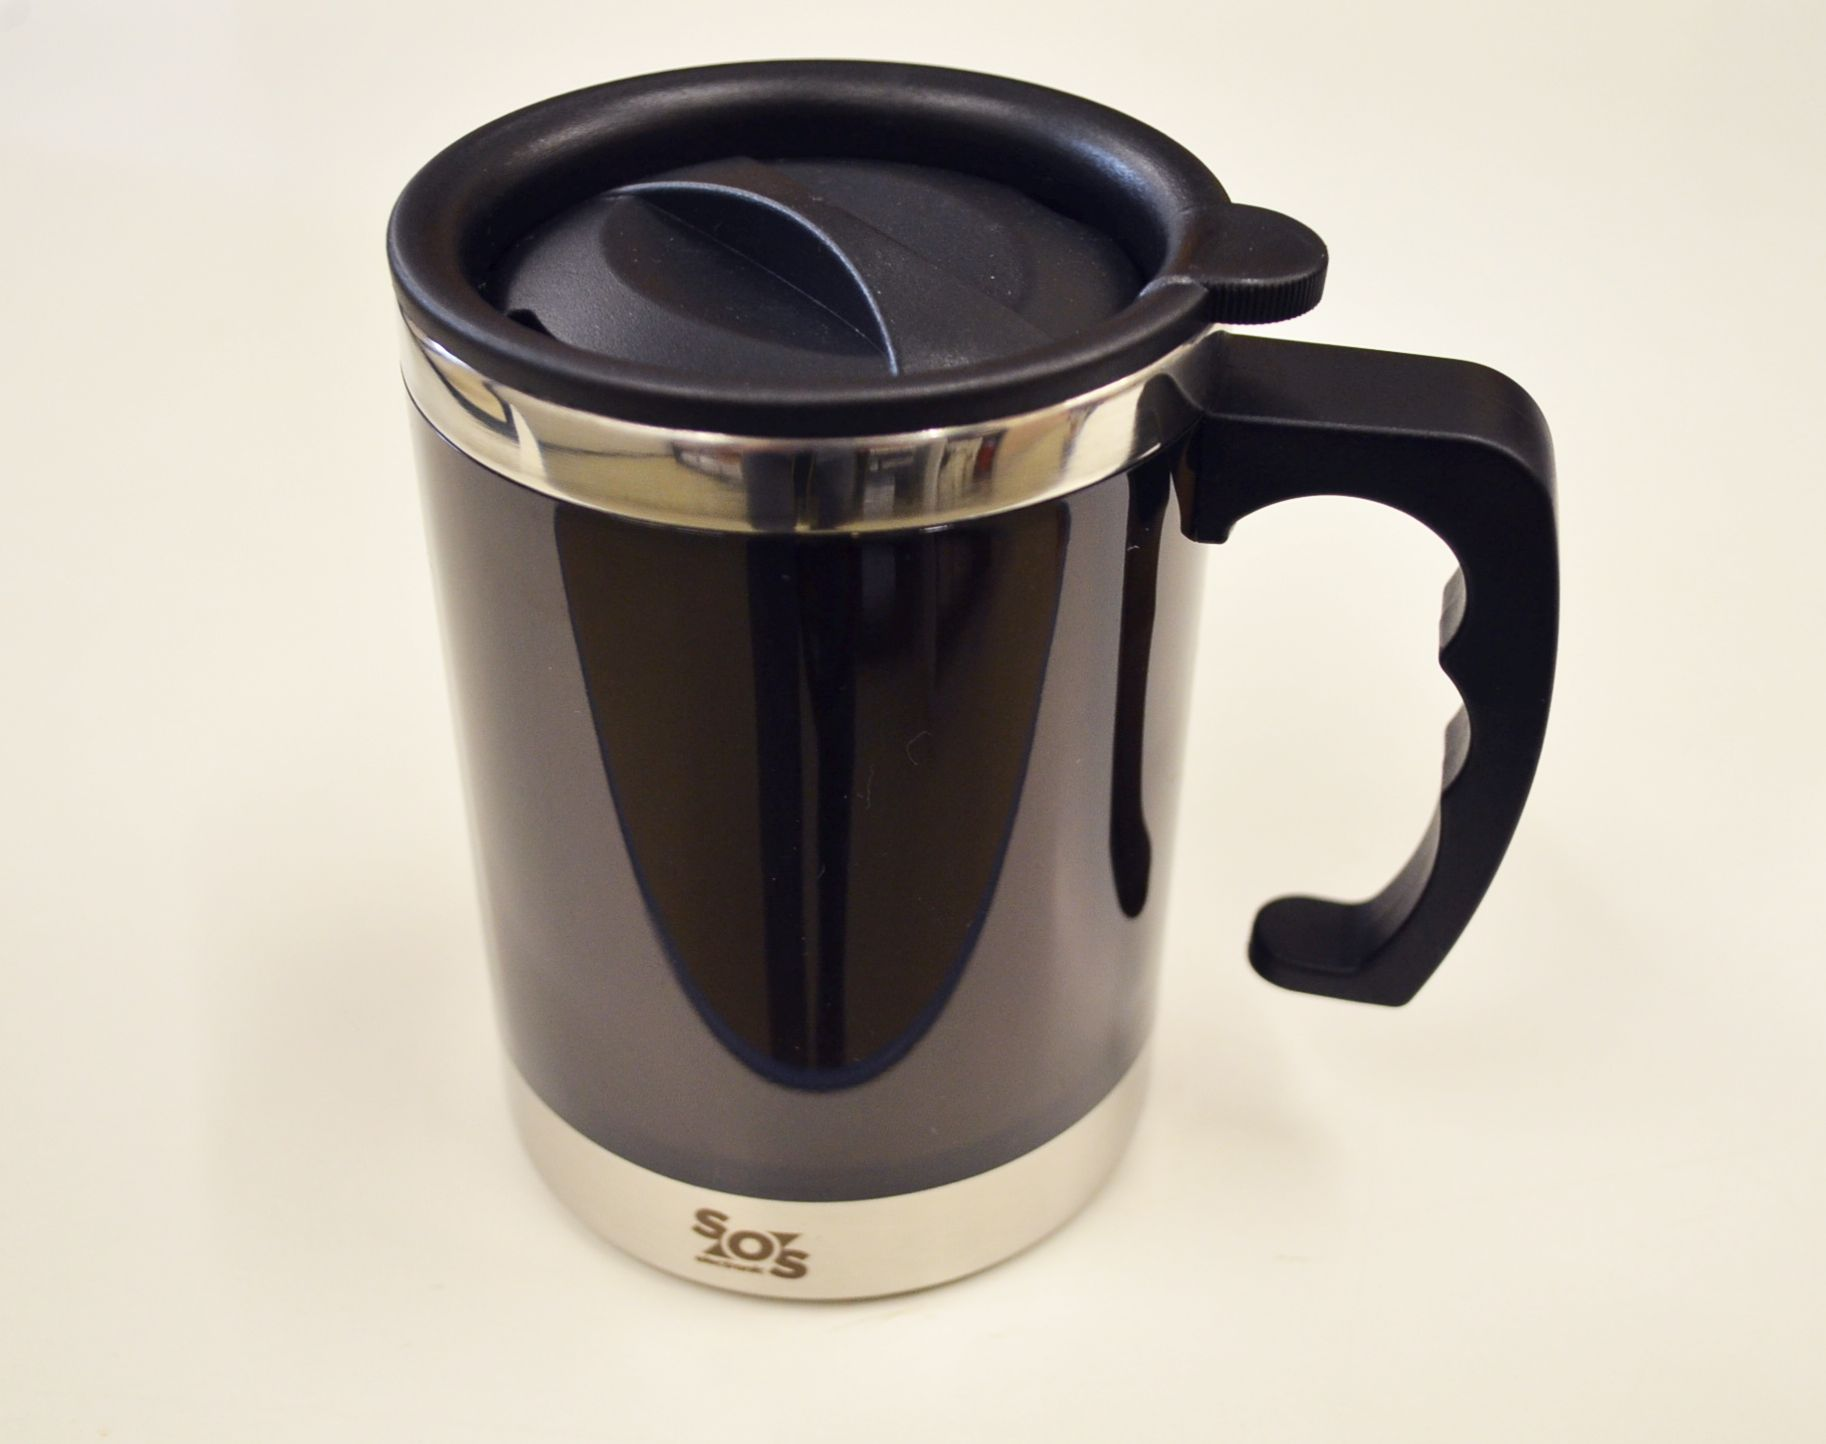 SOS-Thermo Mug 400 ml